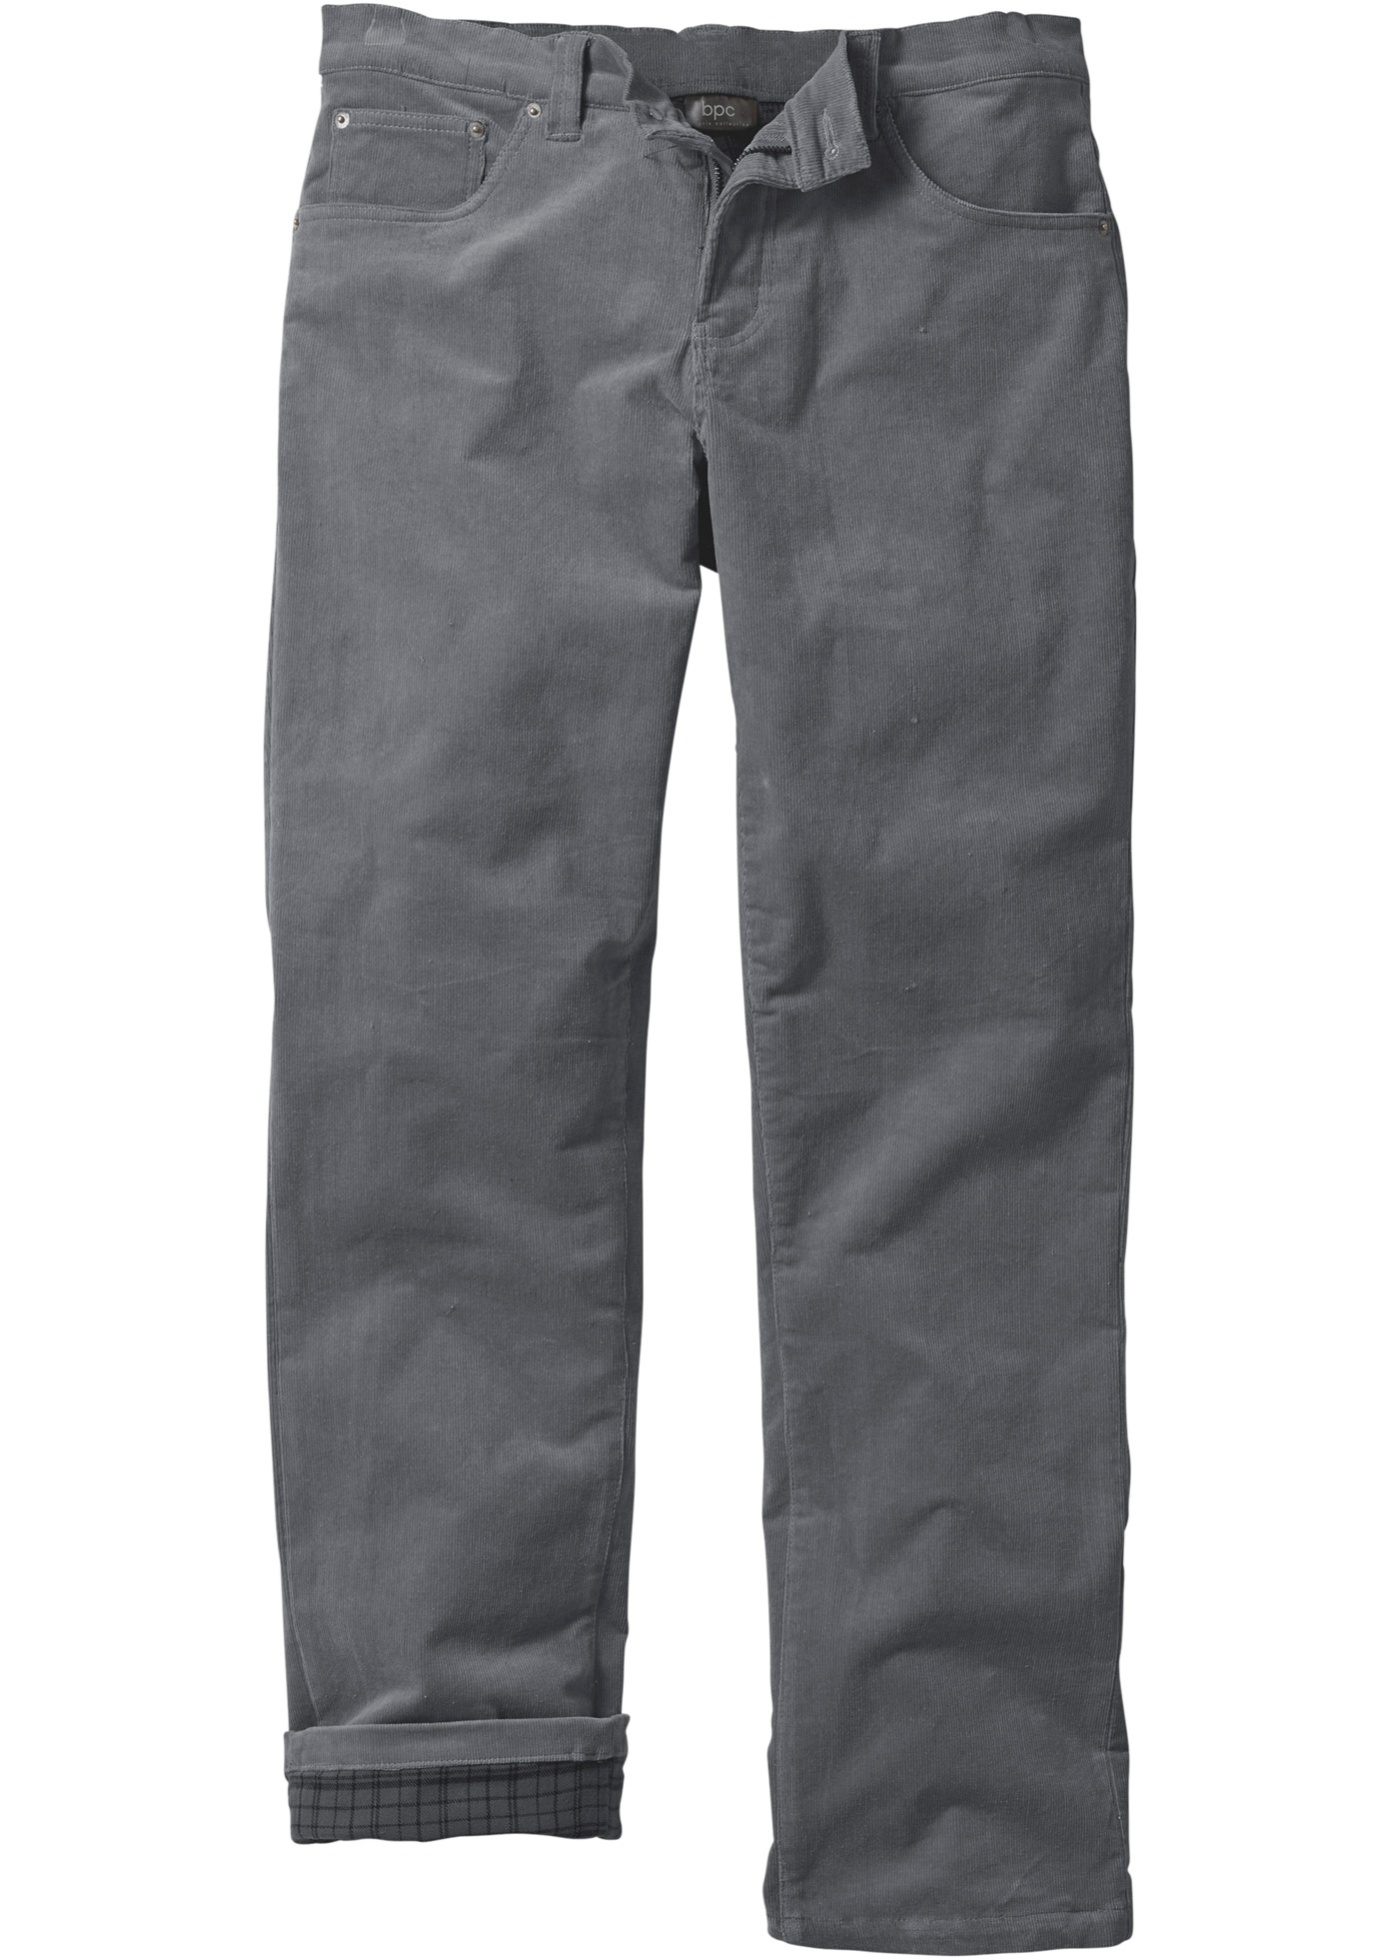 Pantalone termico in vell